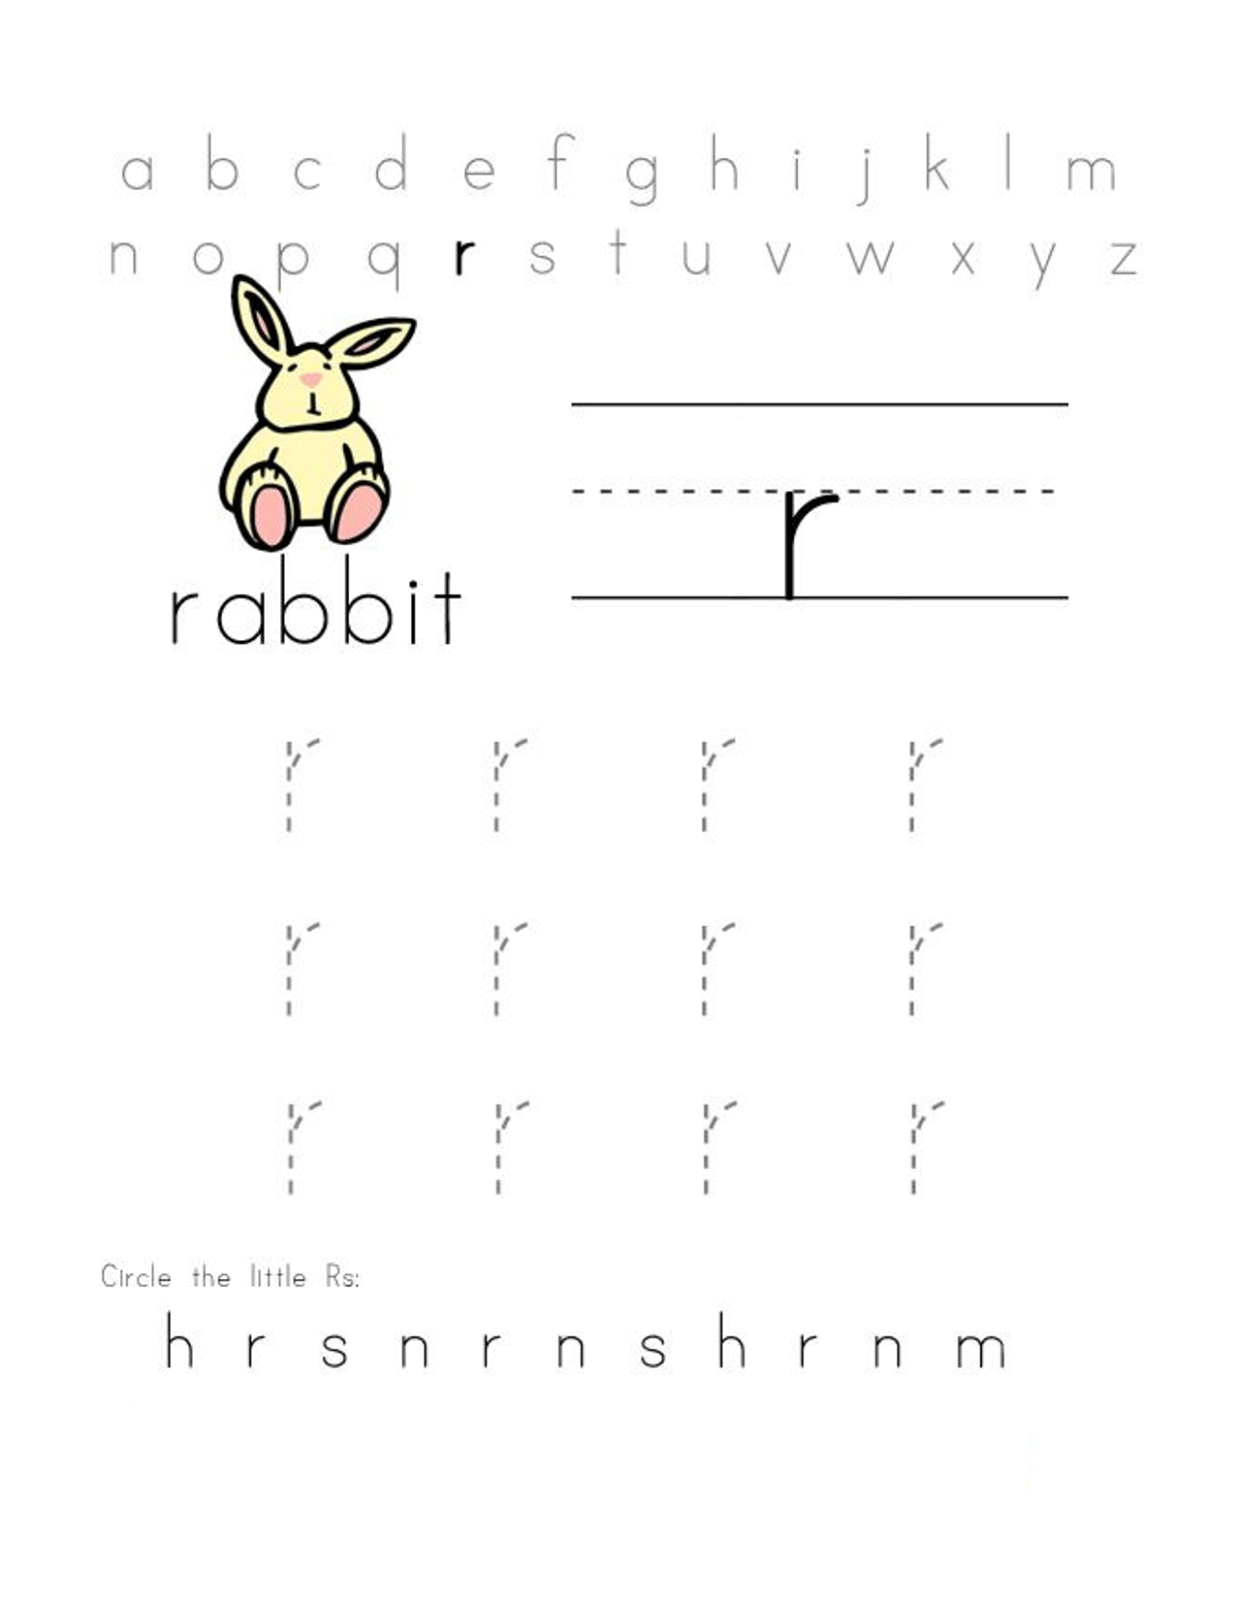 Free Preschool Abc Worksheets